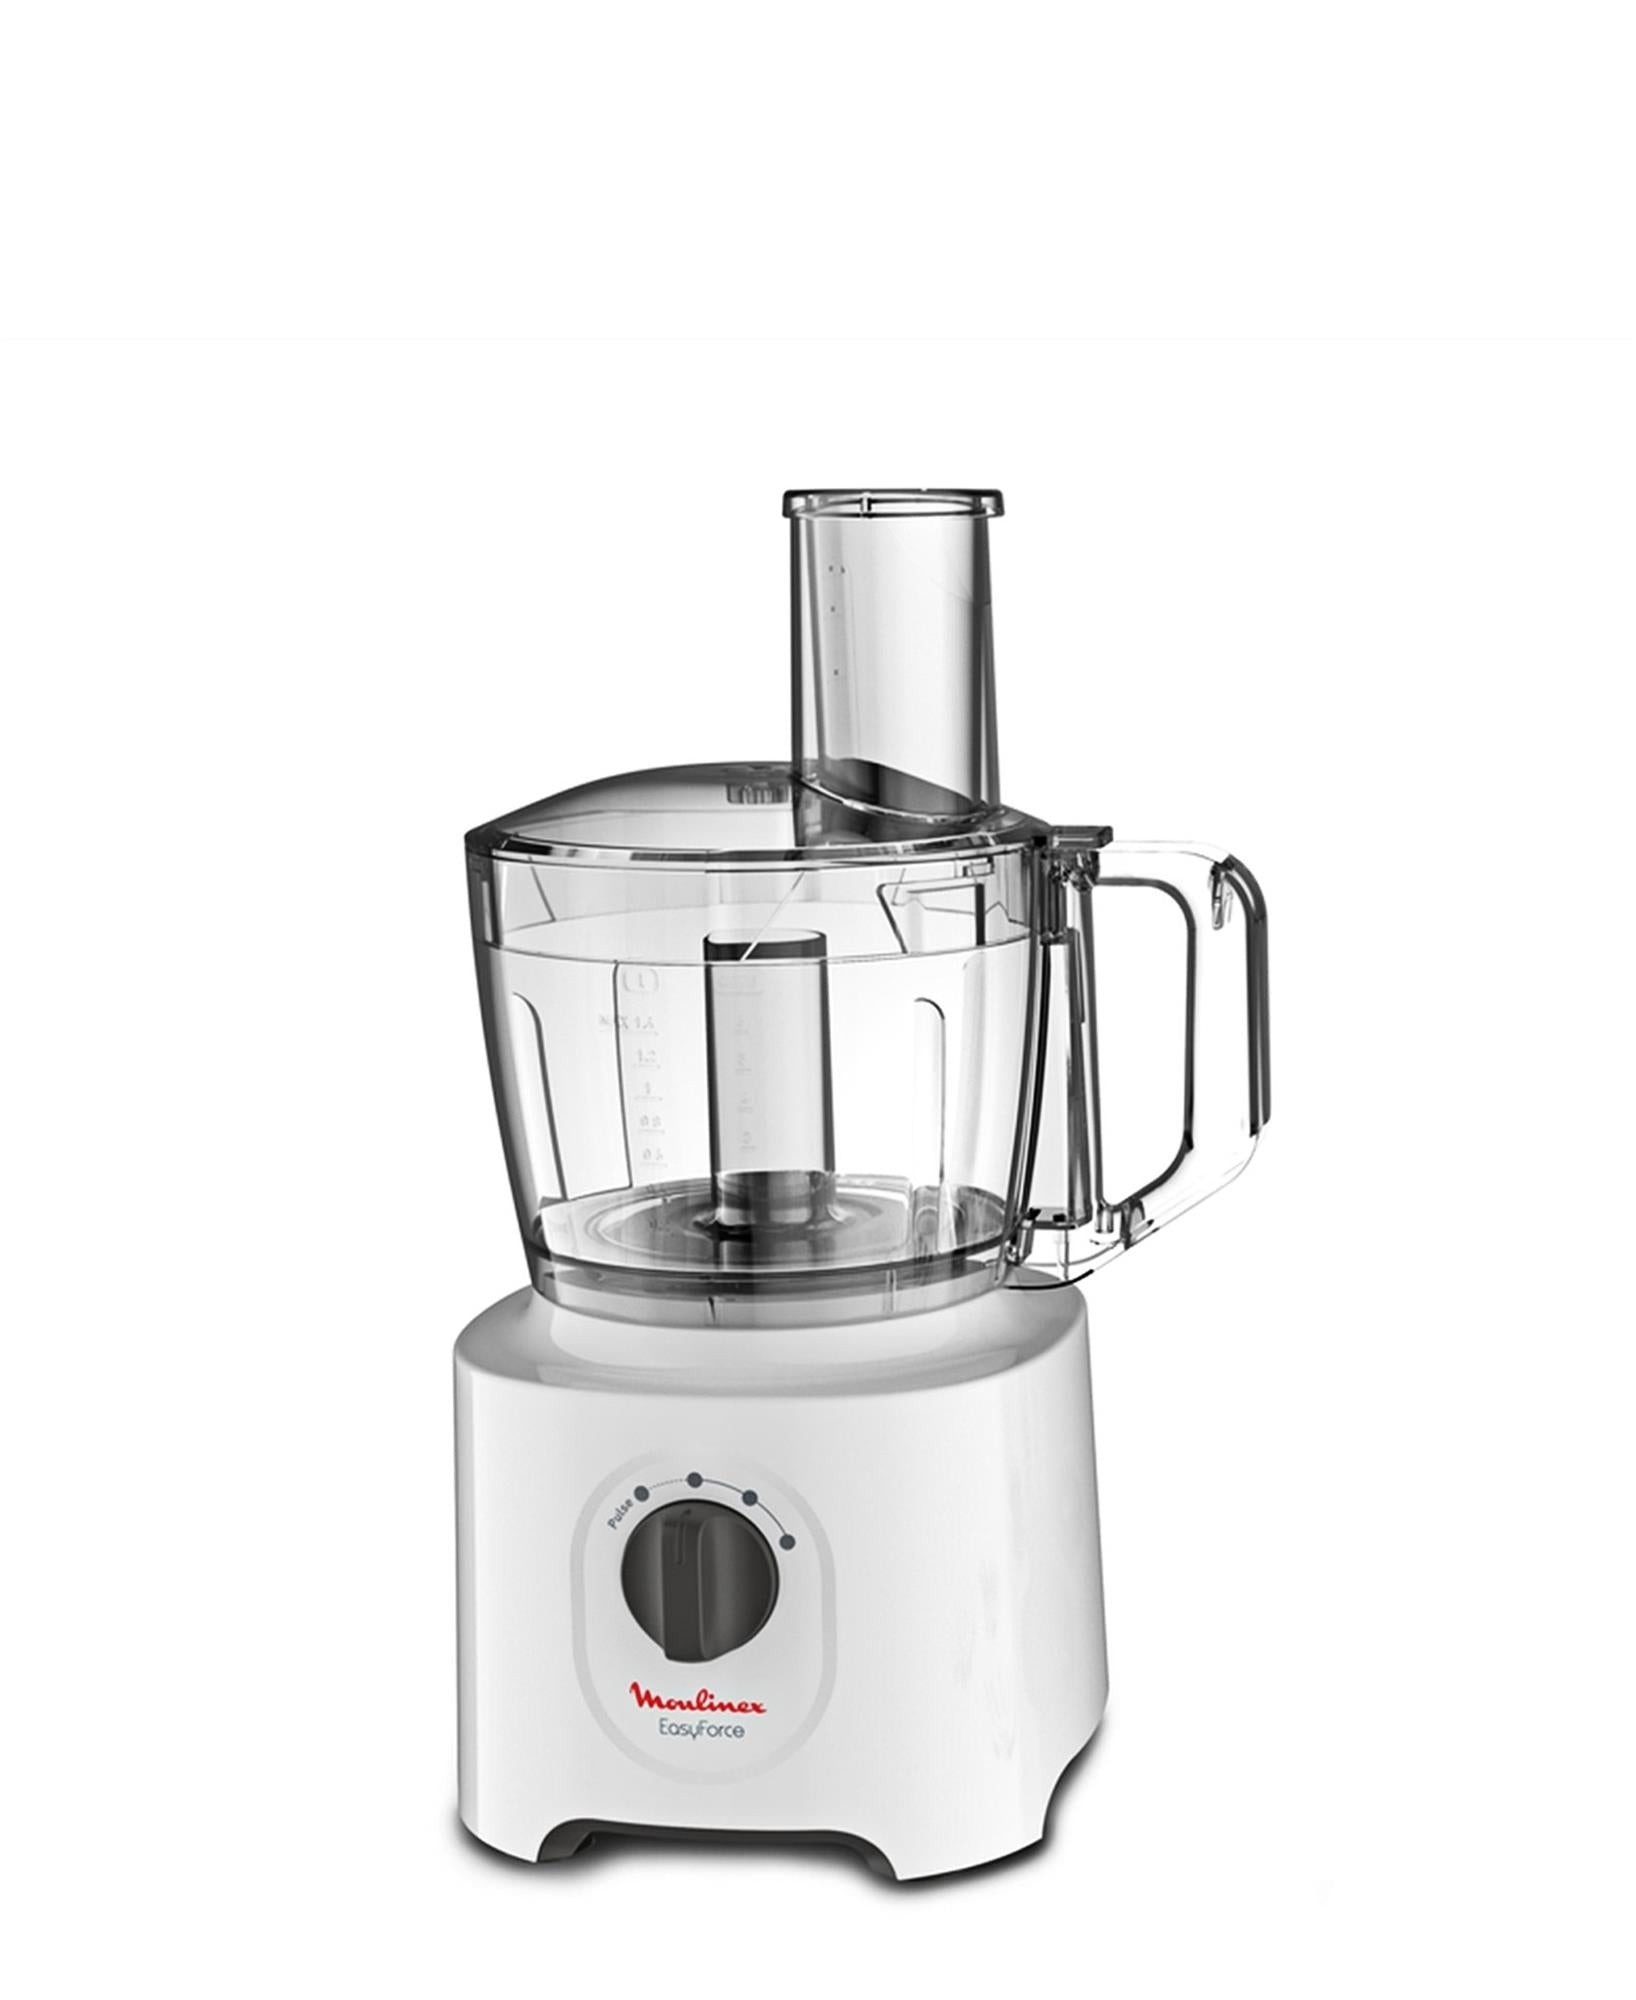 Moulinex Easy Force Food Processor - White